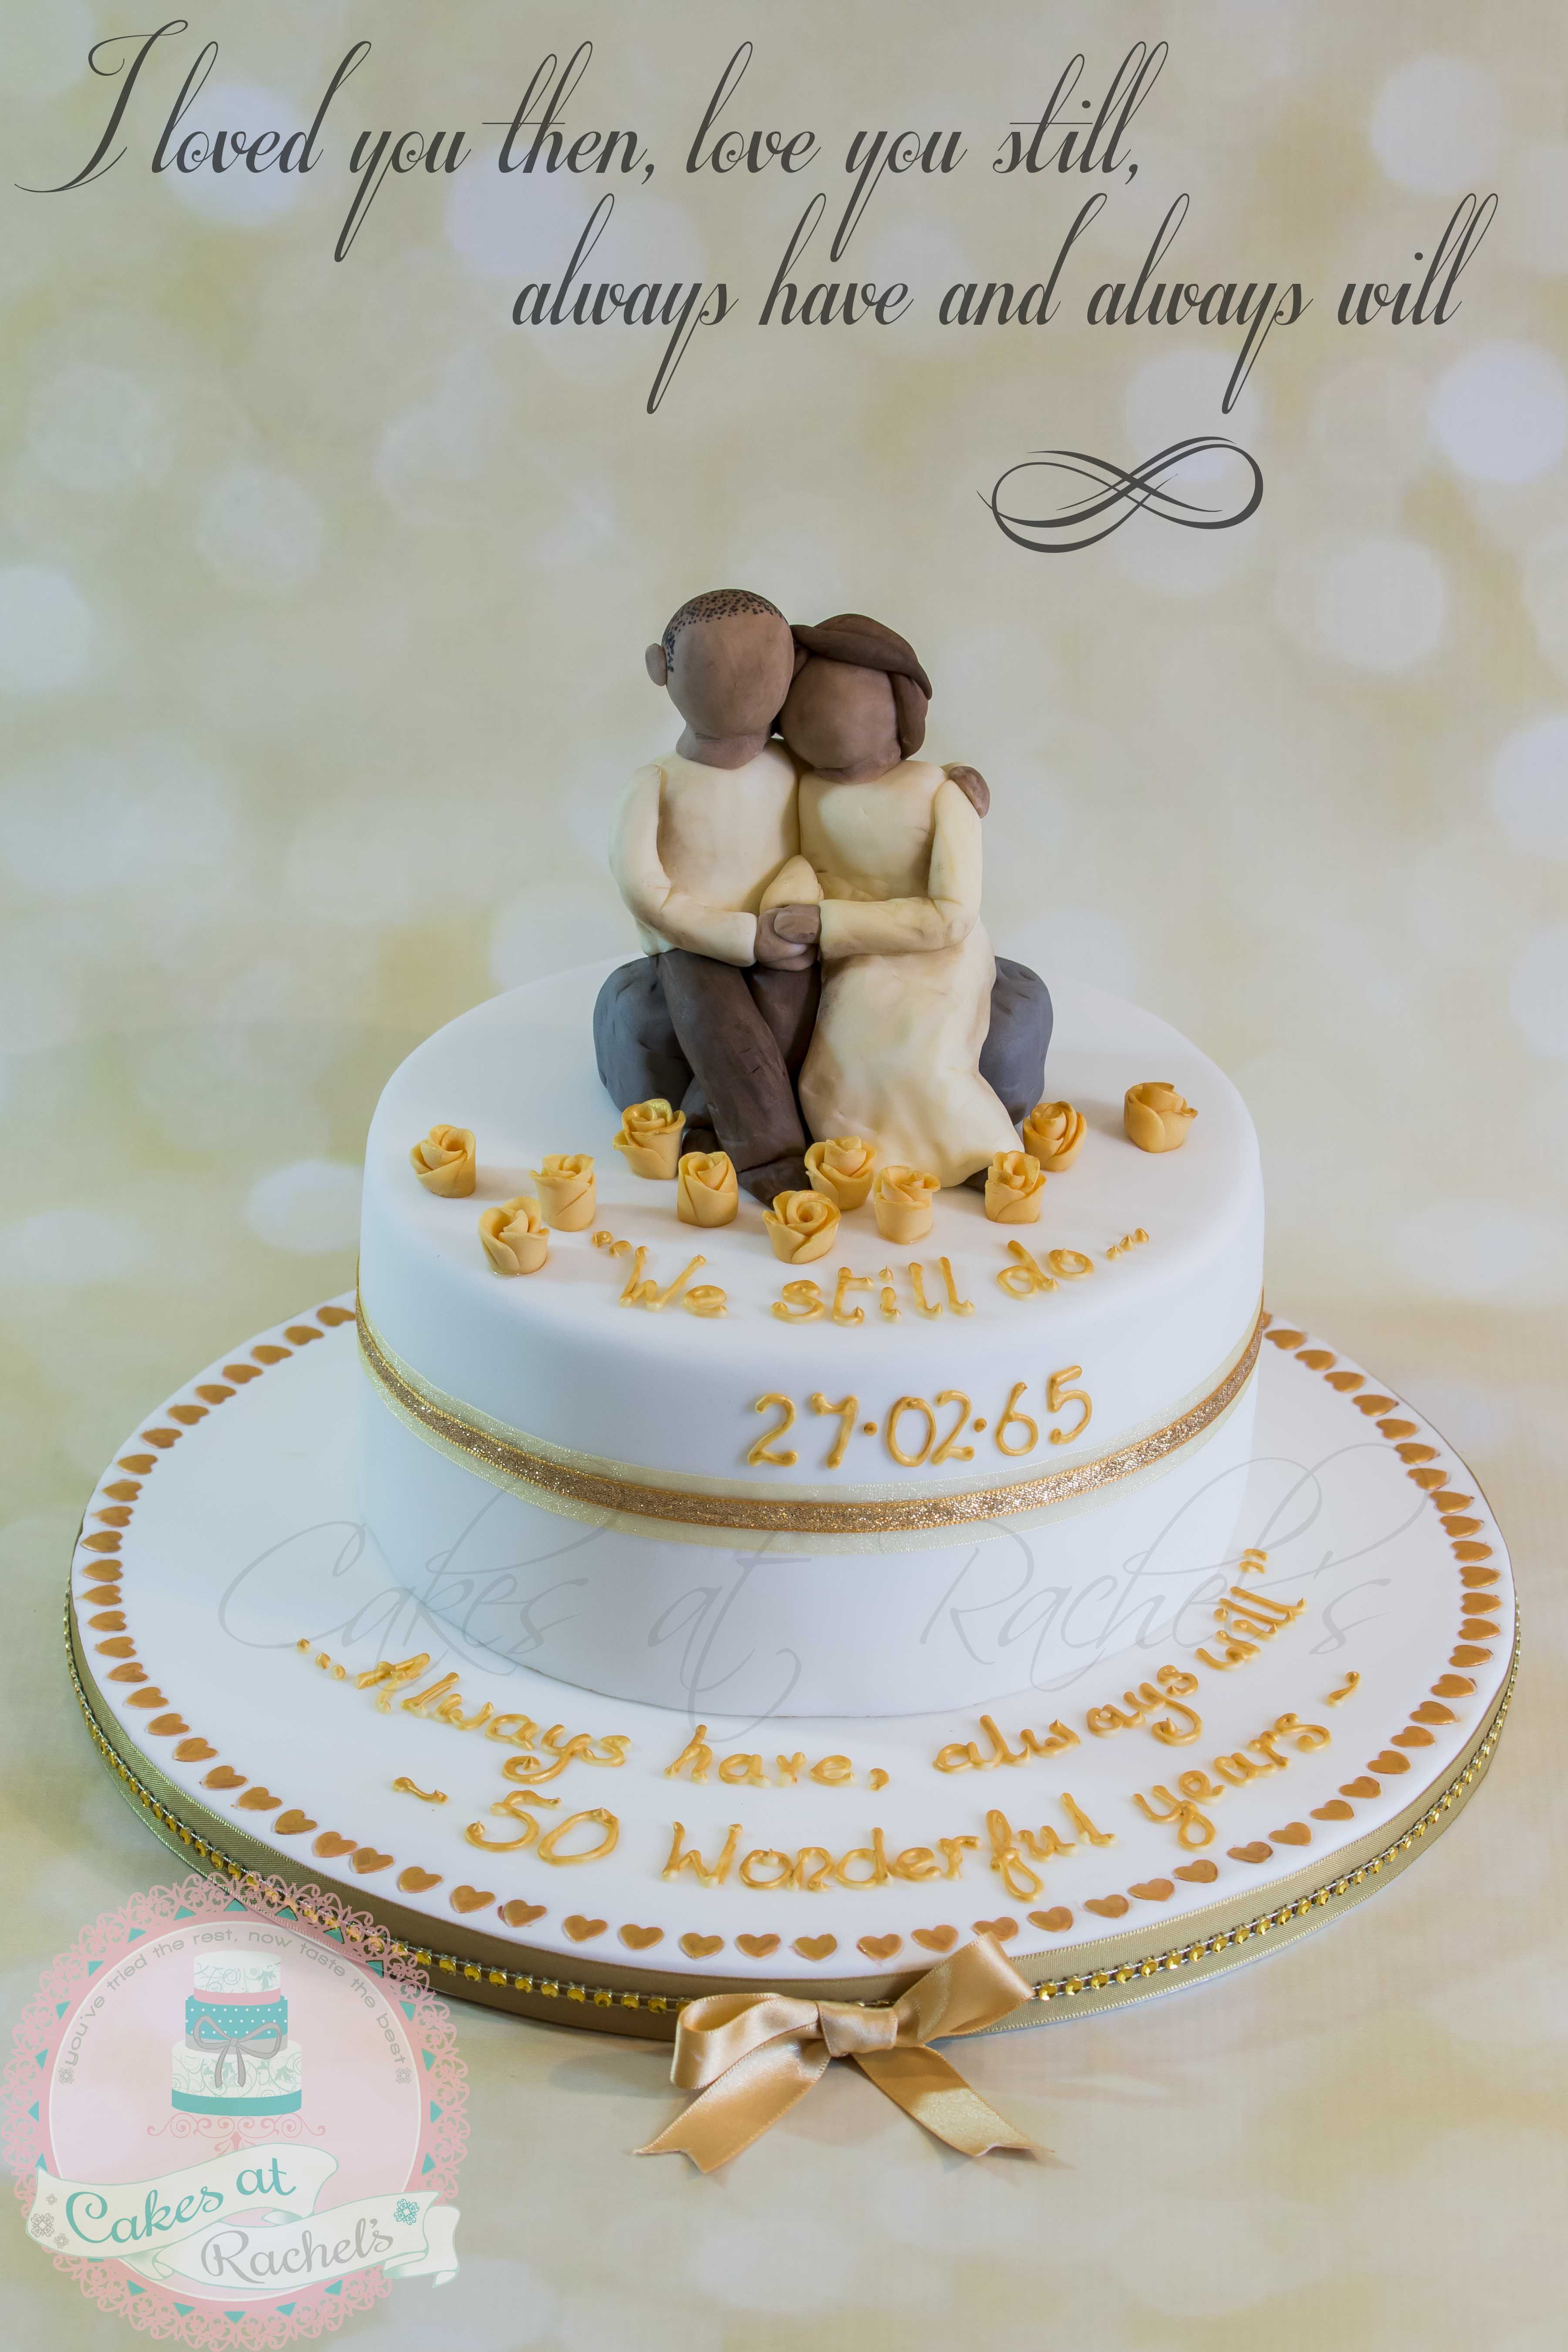 So, this is the cake I designed for my parent's 50th